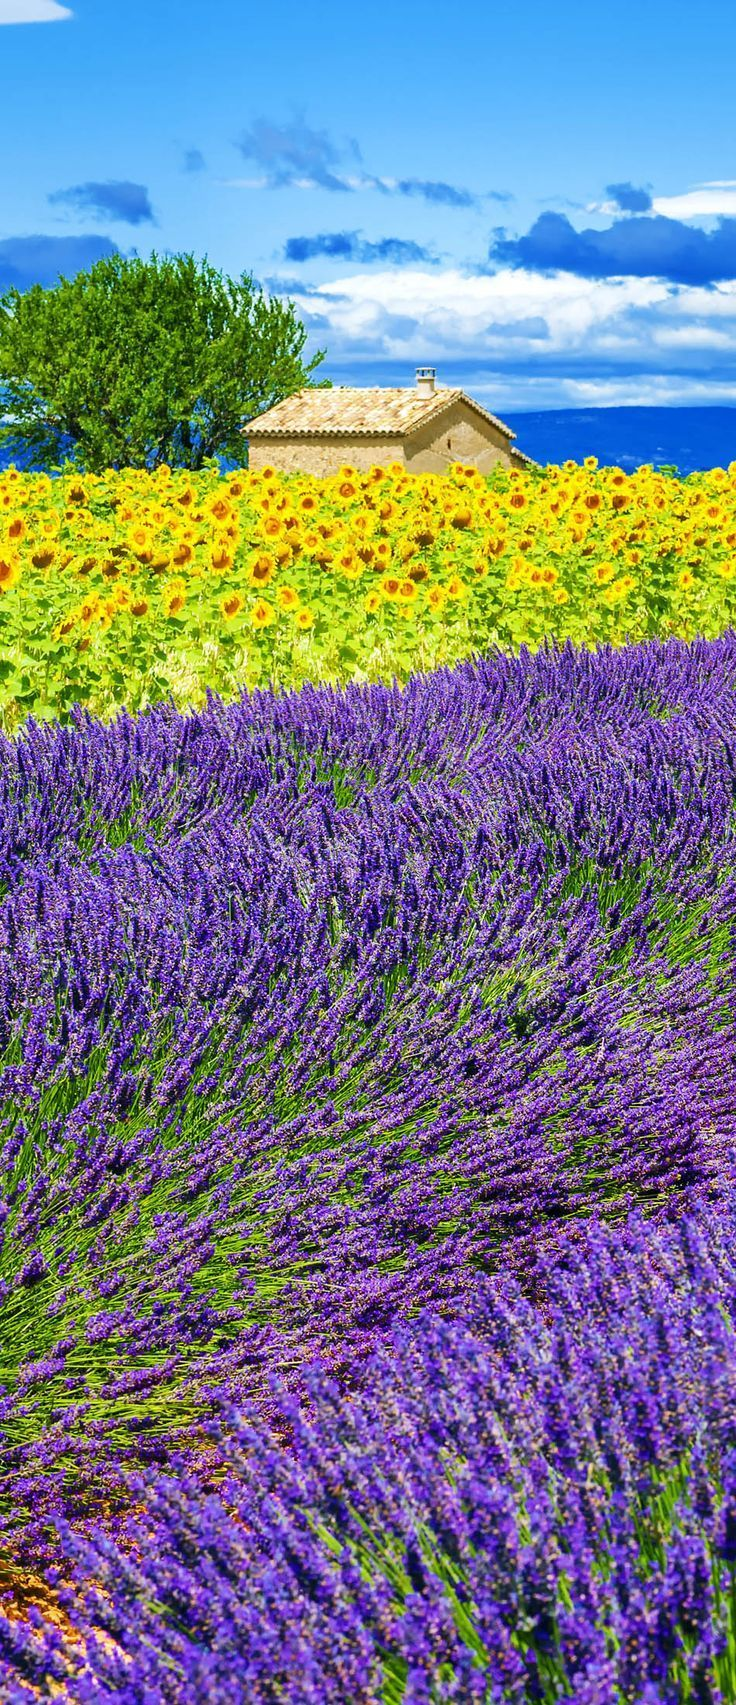 Scenic Lavender and Sunflower Field with Tree in Provence, France